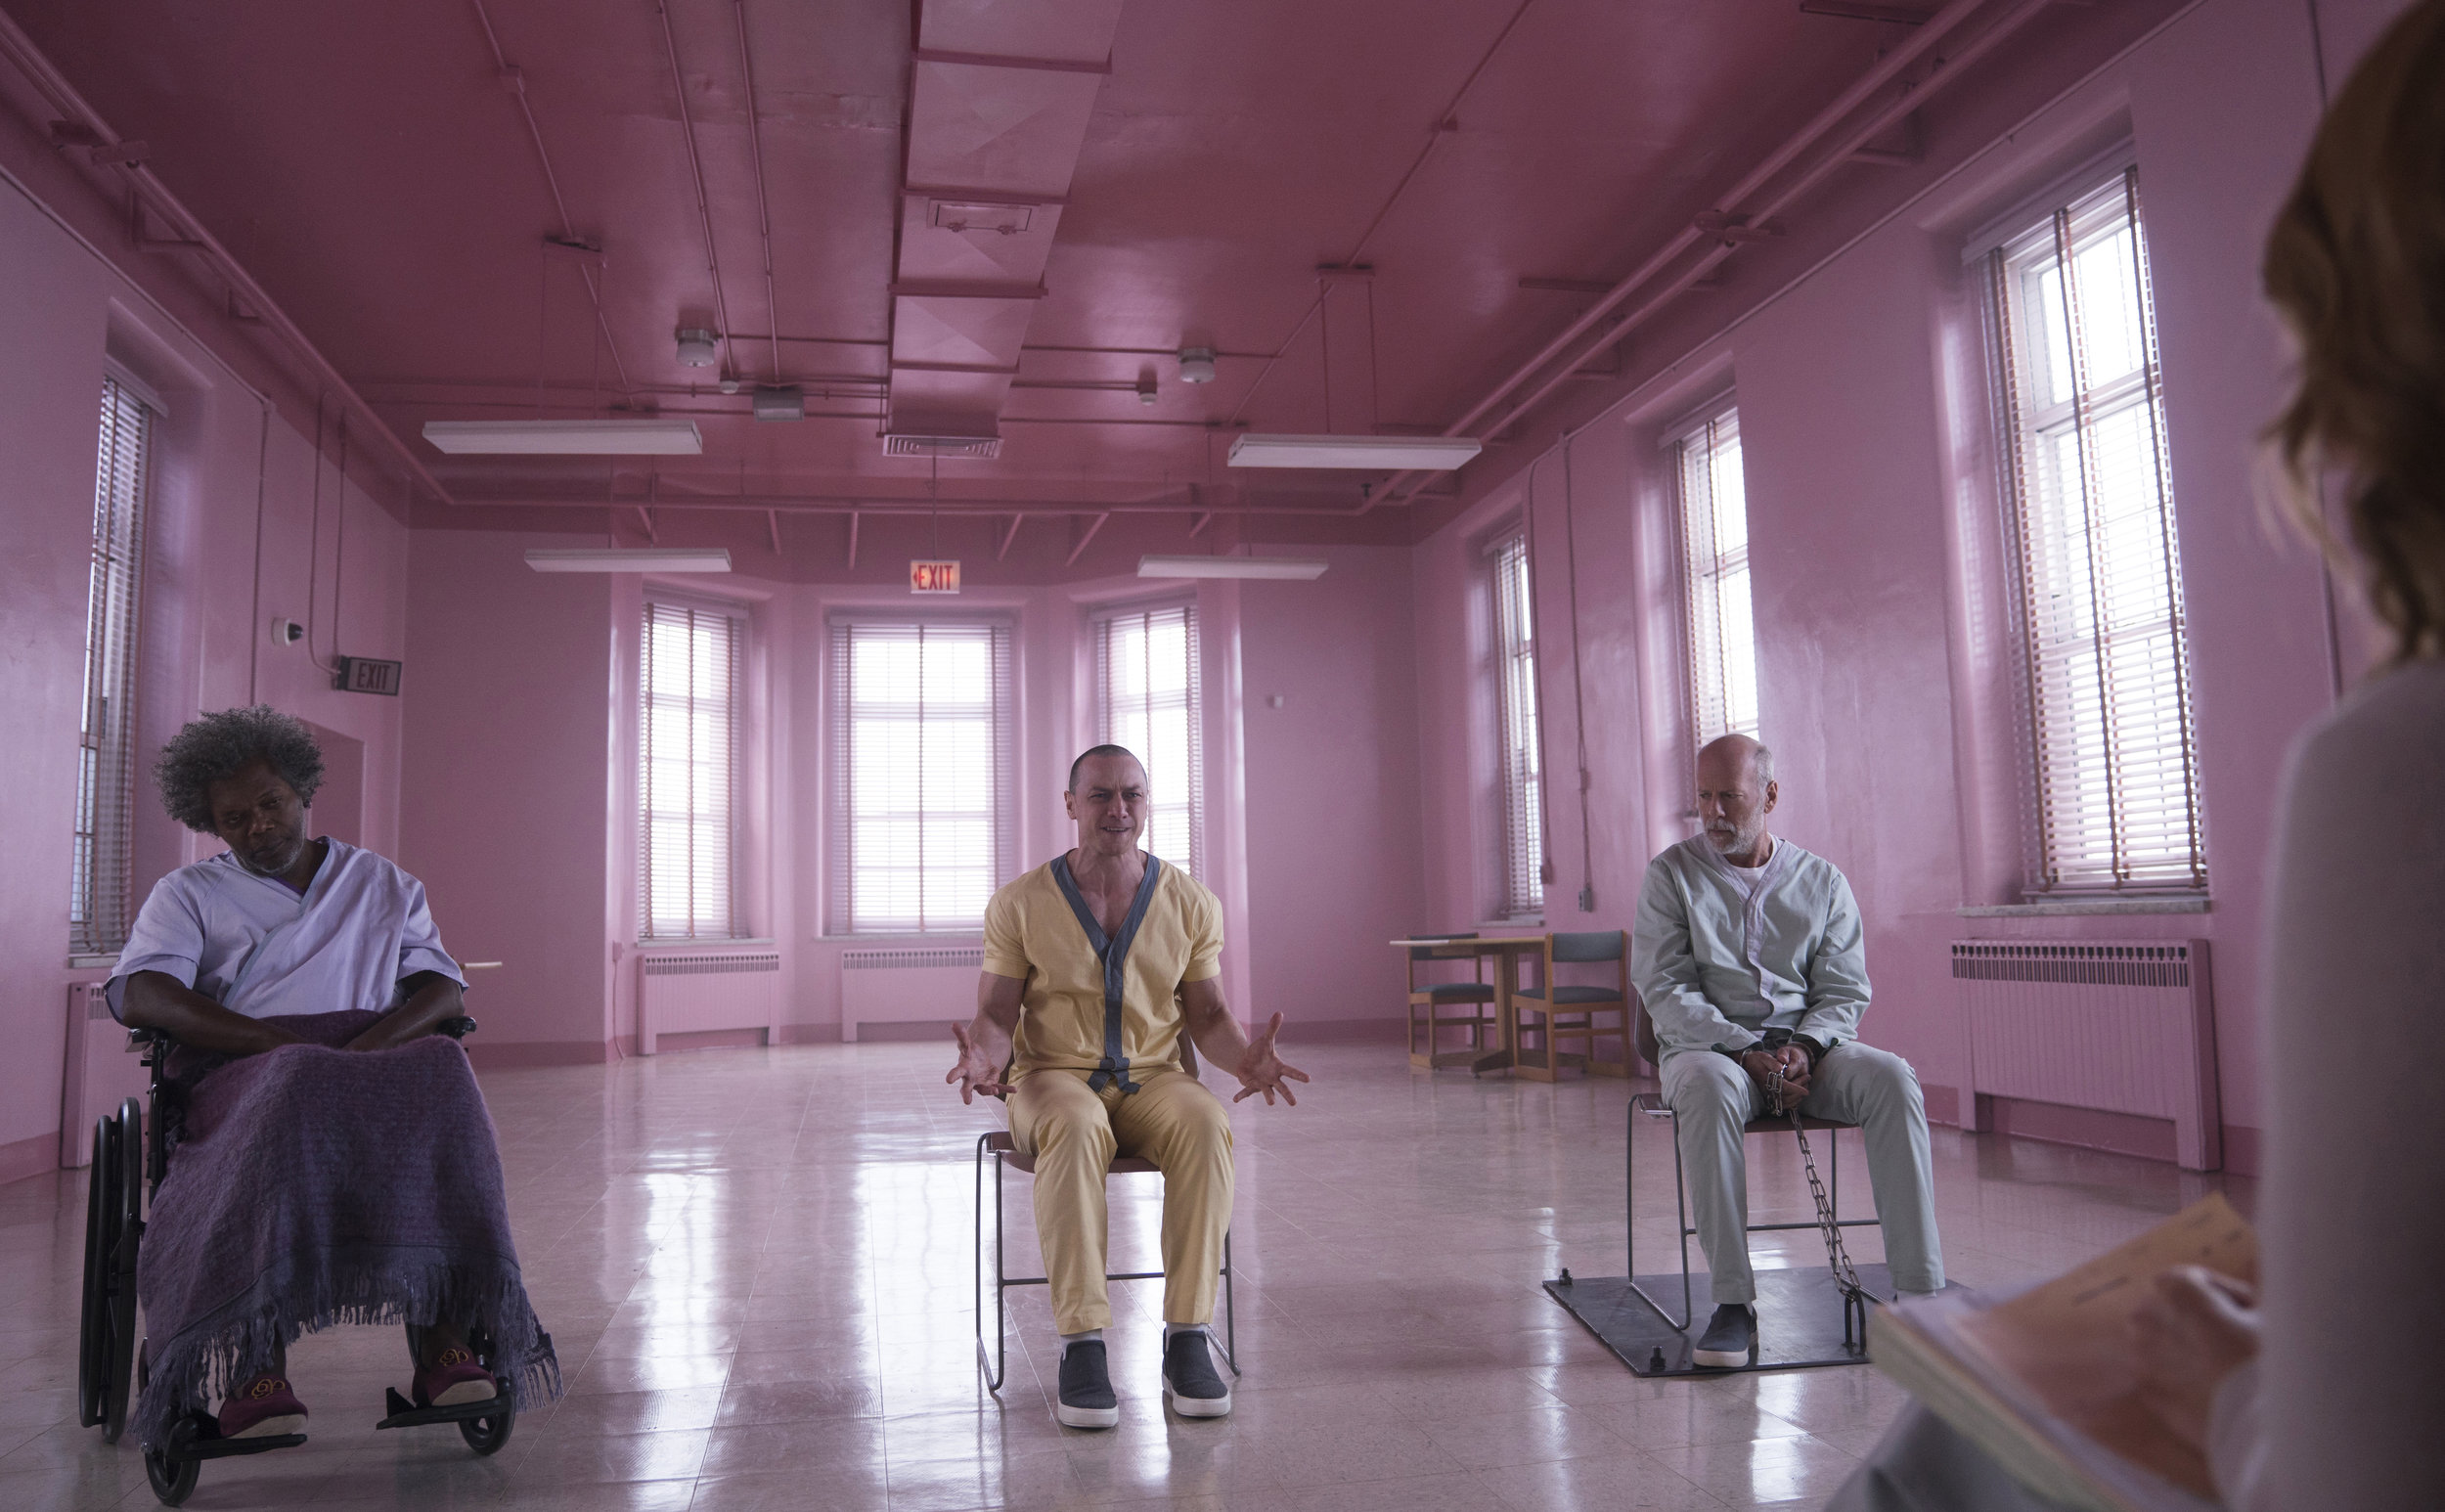 """Dr. Ellie Sample (Sarah Paulson, right) interviews three mental patients — from left, Elijah Price/Mr. Glass (Samuel L. Jackson), Kevin Crump aka The Horde (James McAvoy), and David Dunn (Bruce Willis — in M. Night Shyamalan's thriller """"Glass."""" (Photo by Jessica Kourkounis, courtesy Universal Pictures)"""